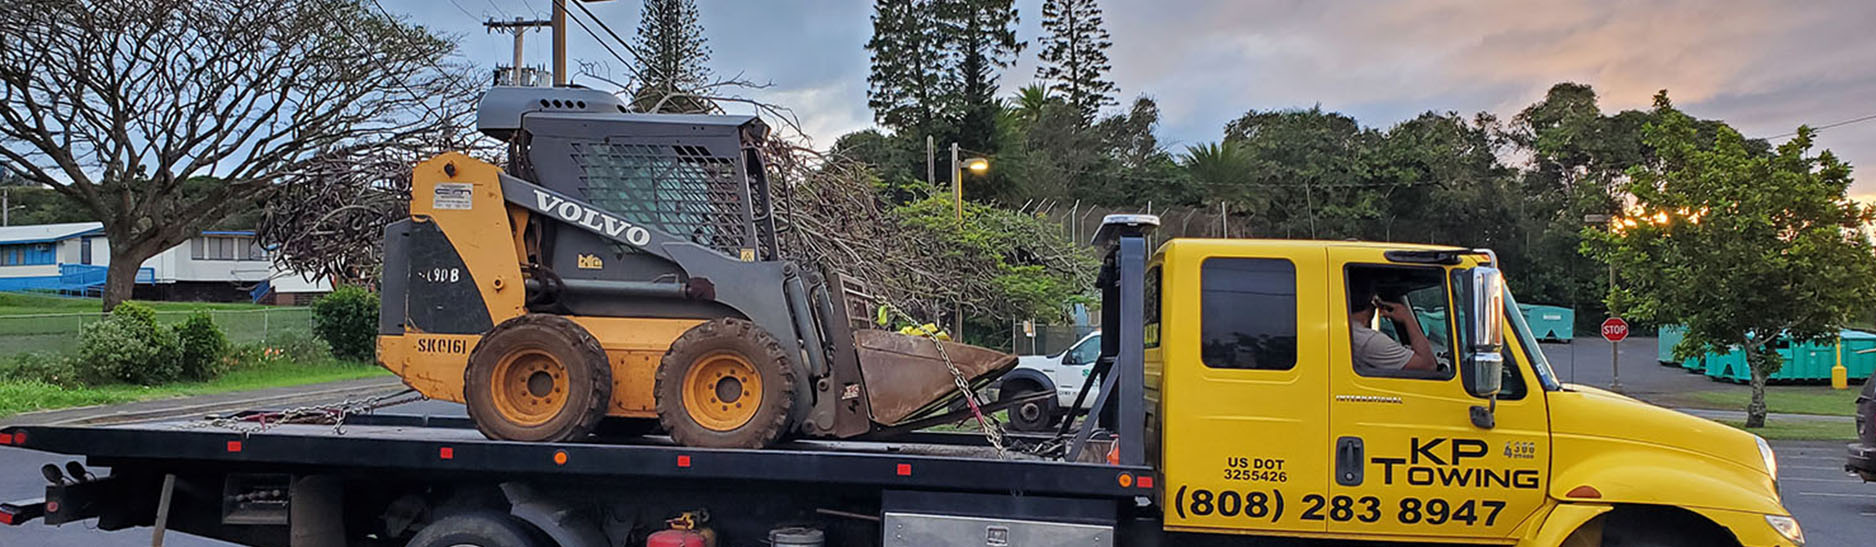 Makawao Tow Truck Service, Towing Company and 24 Hour Towing